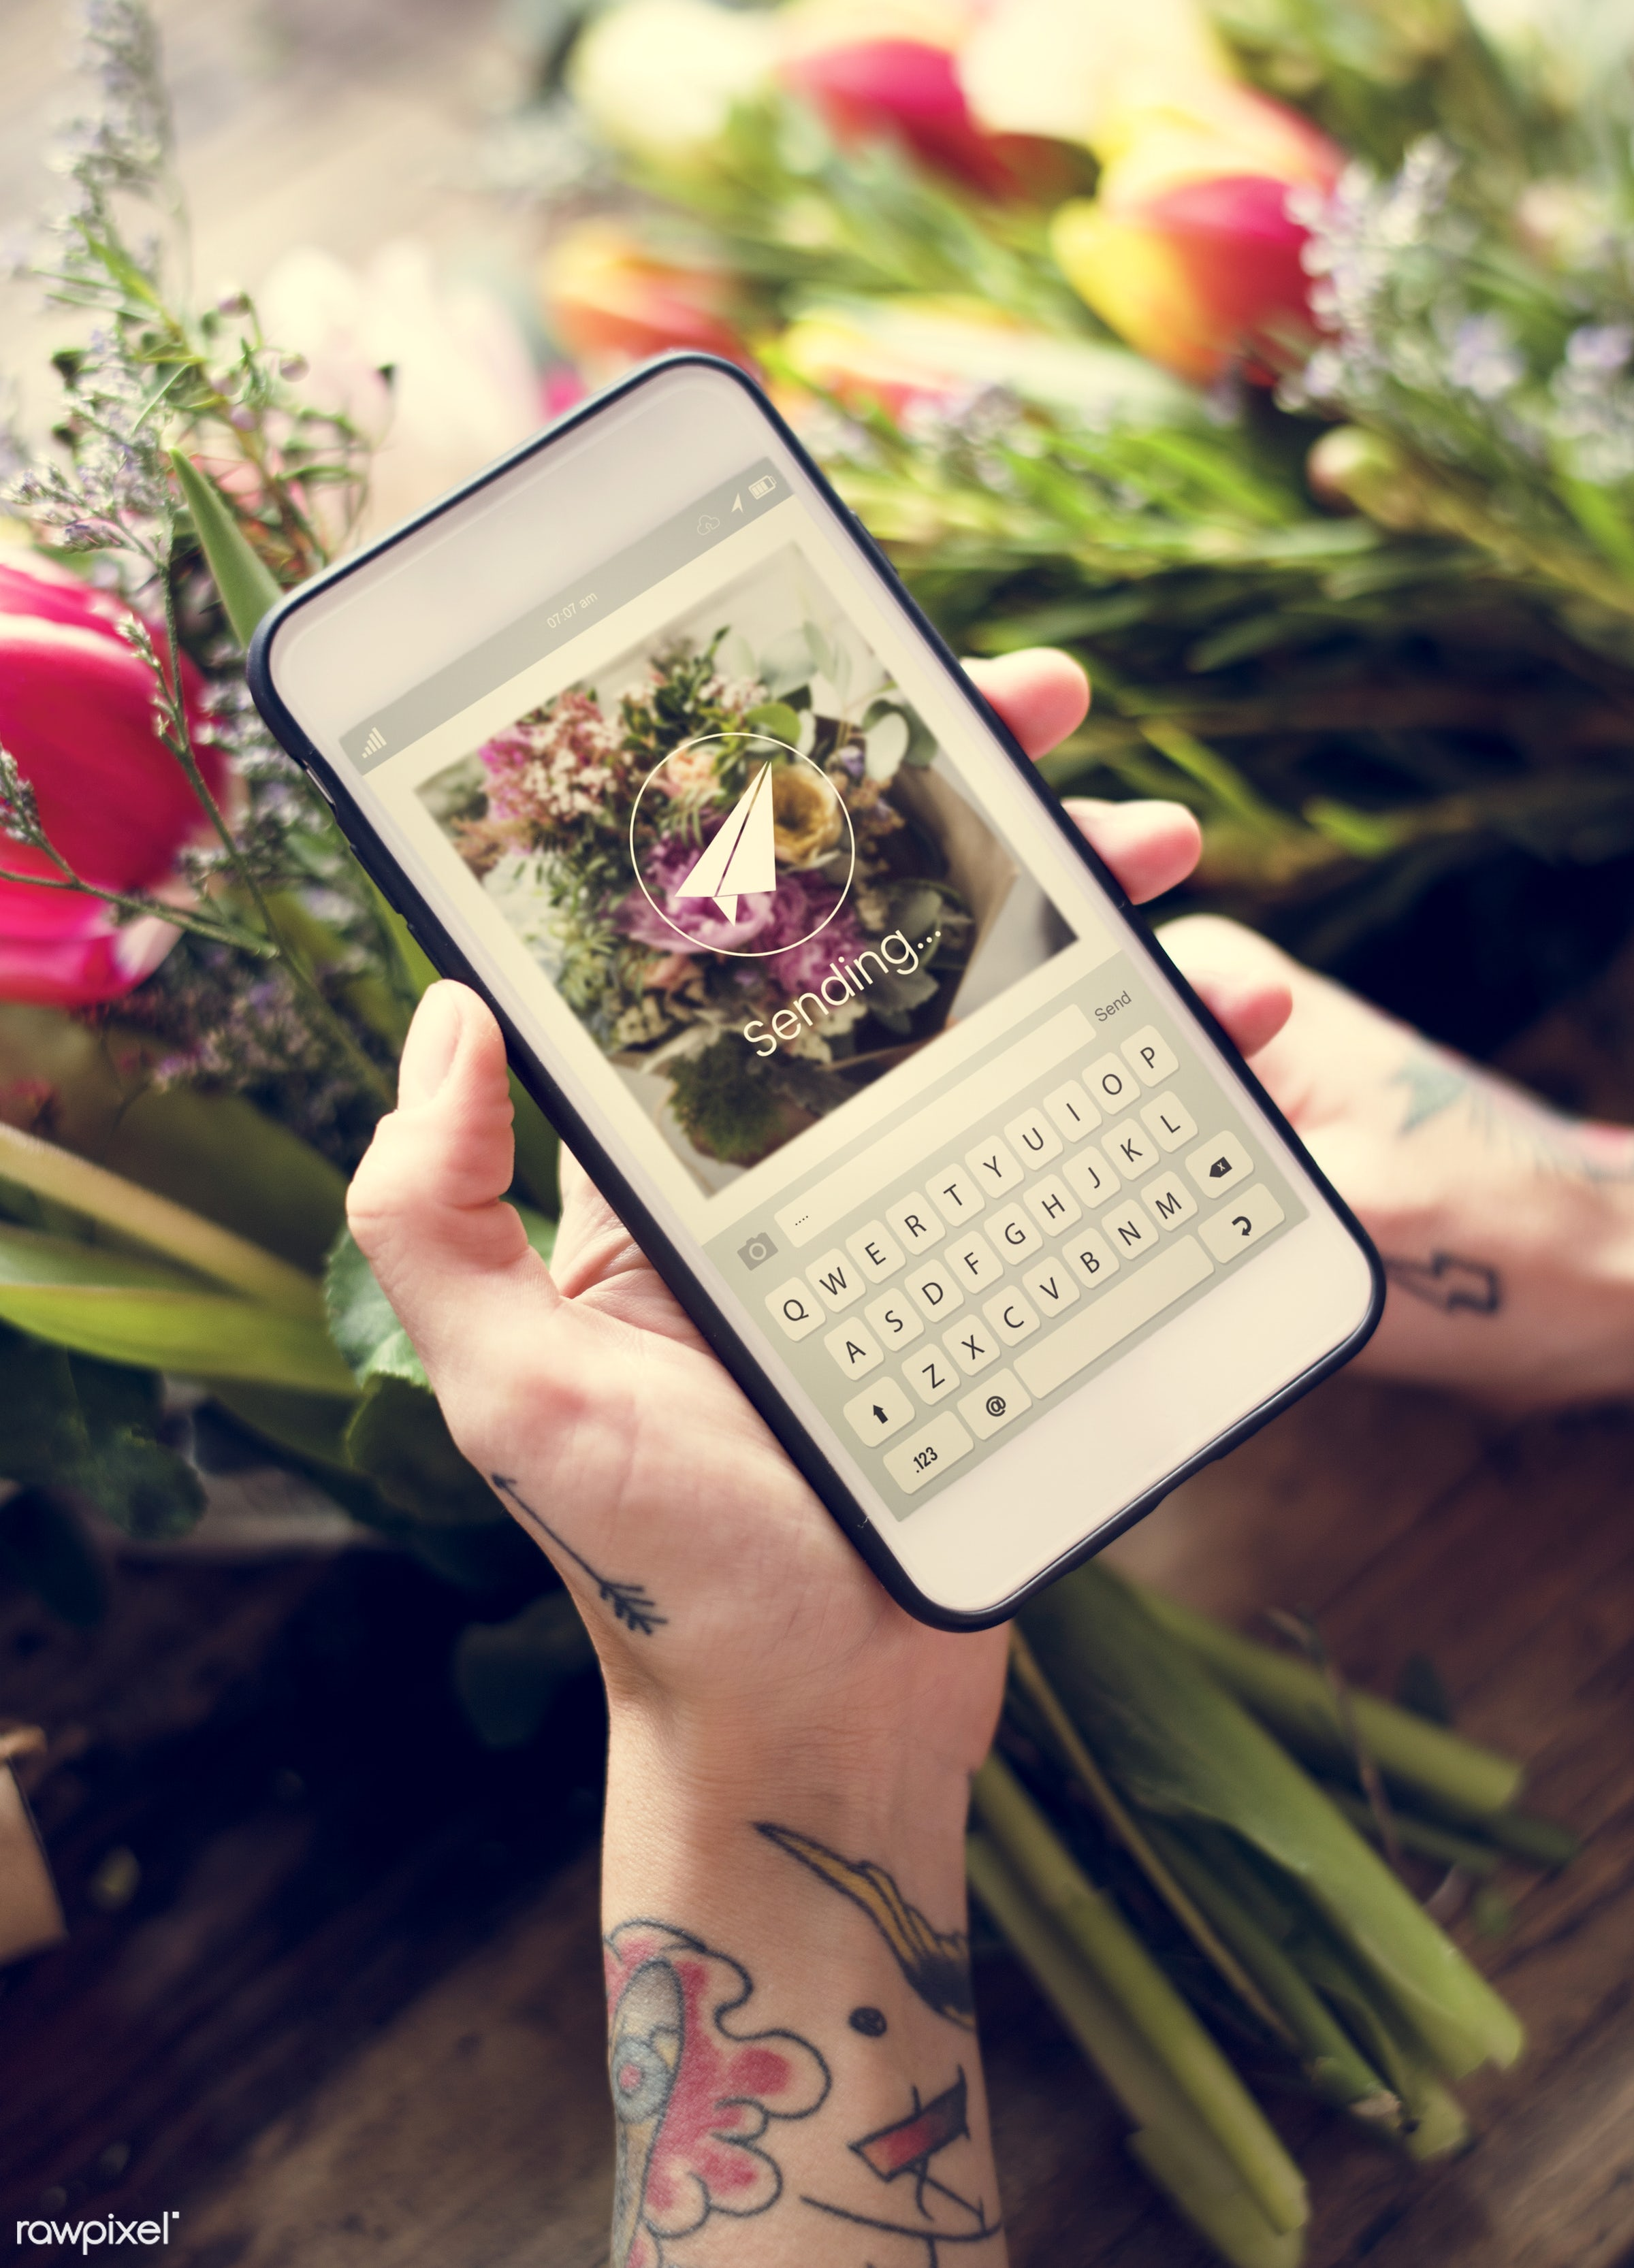 using, detail, person, phone, technology, holding, snap, show, people, decor, nature, capture, tattoo, flowers, screen,...